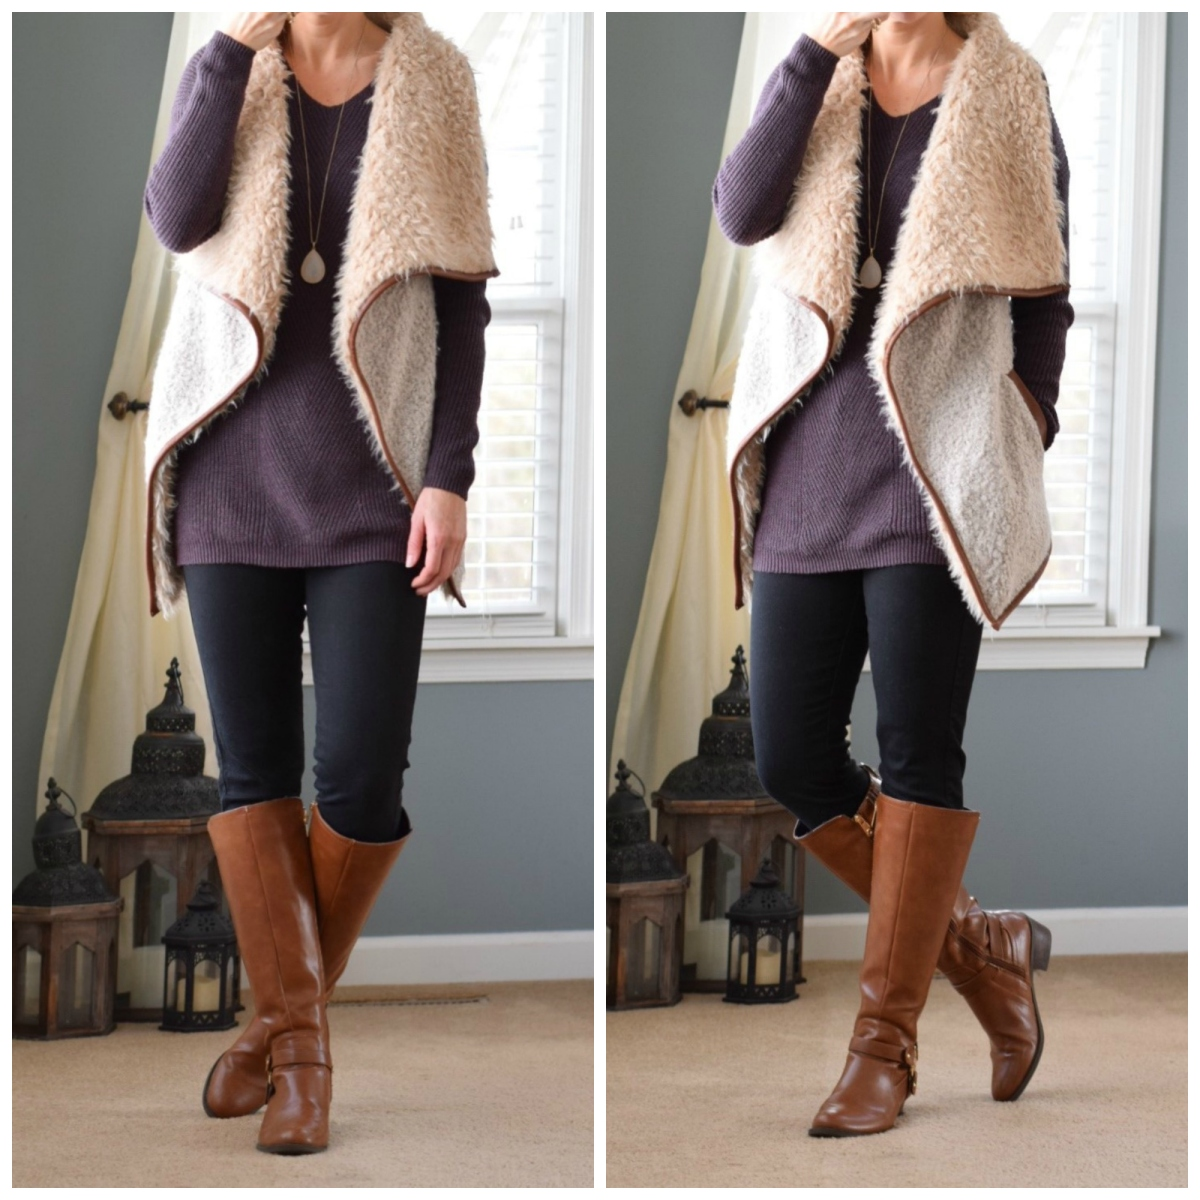 Pair a faux shearling vest with an oversized sweater for a cozy outfit